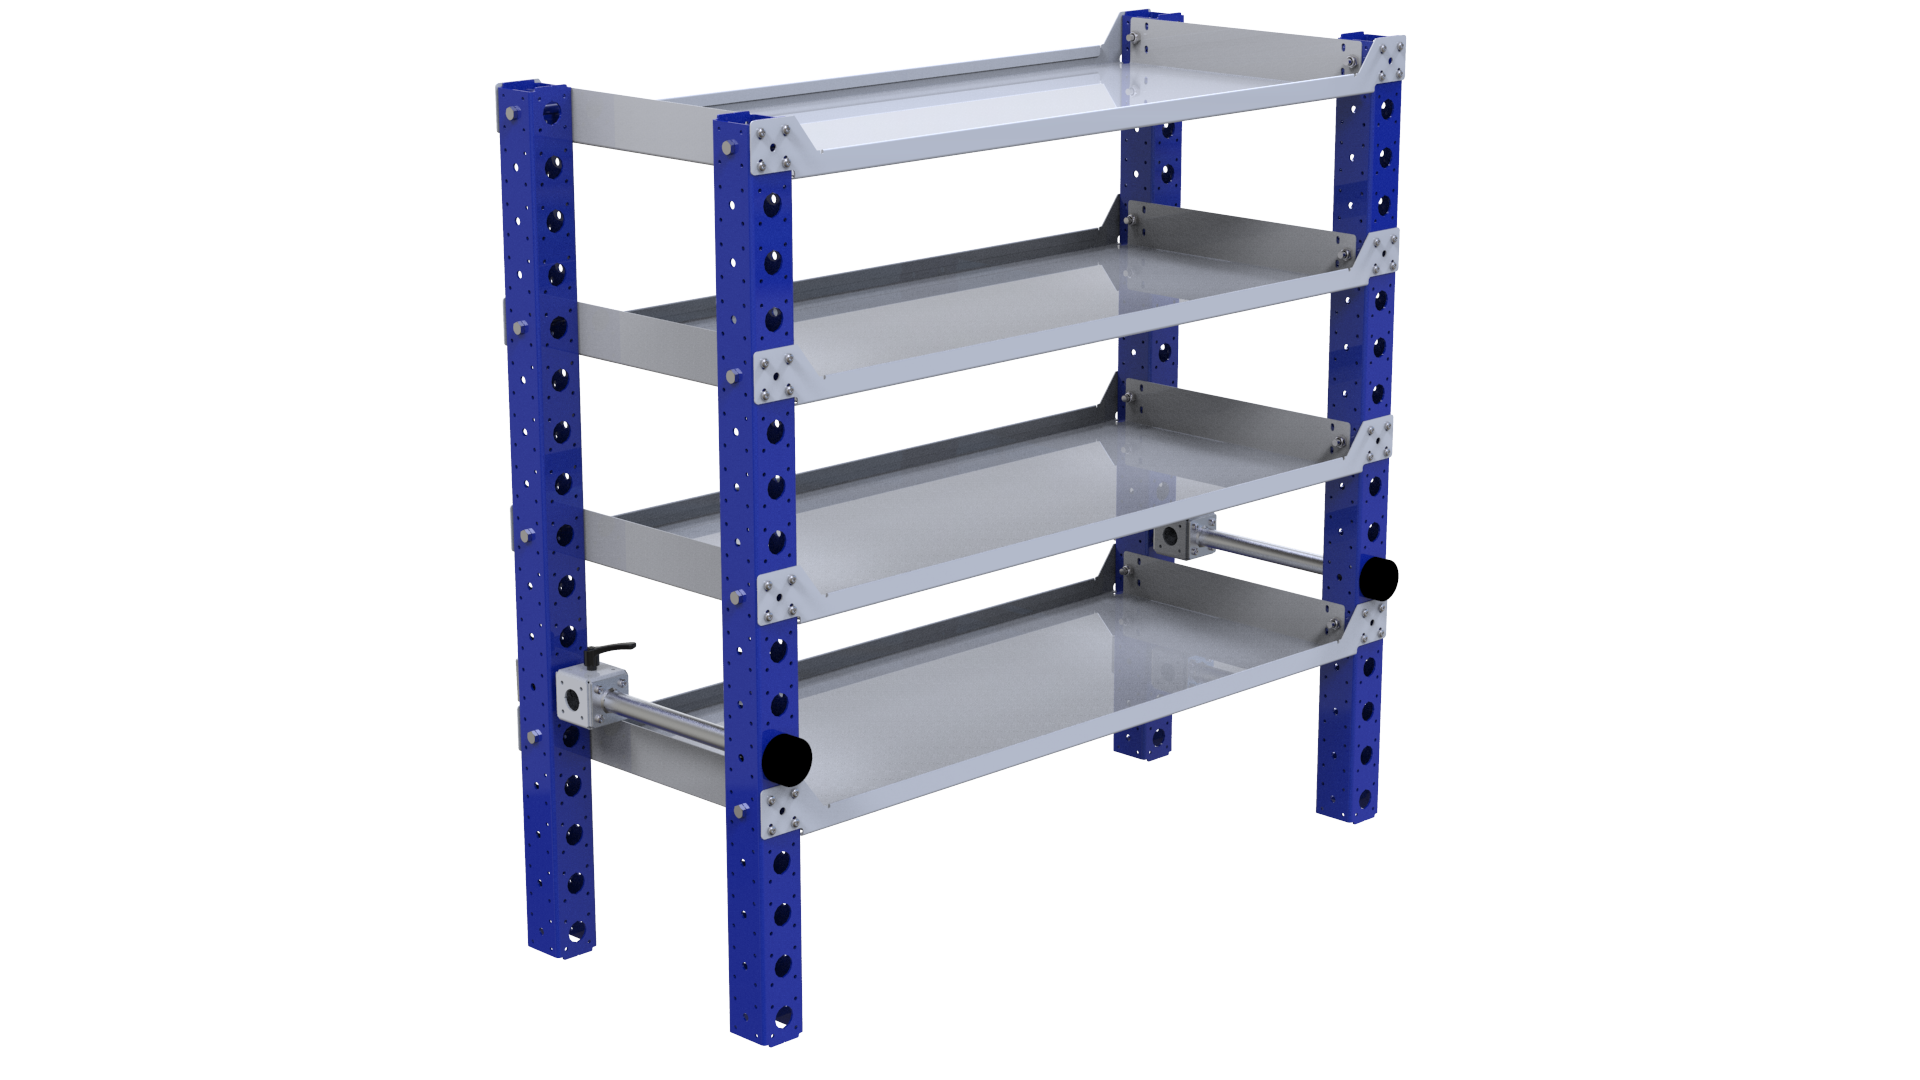 Flat shelf rack for transporting various parts and boxes.